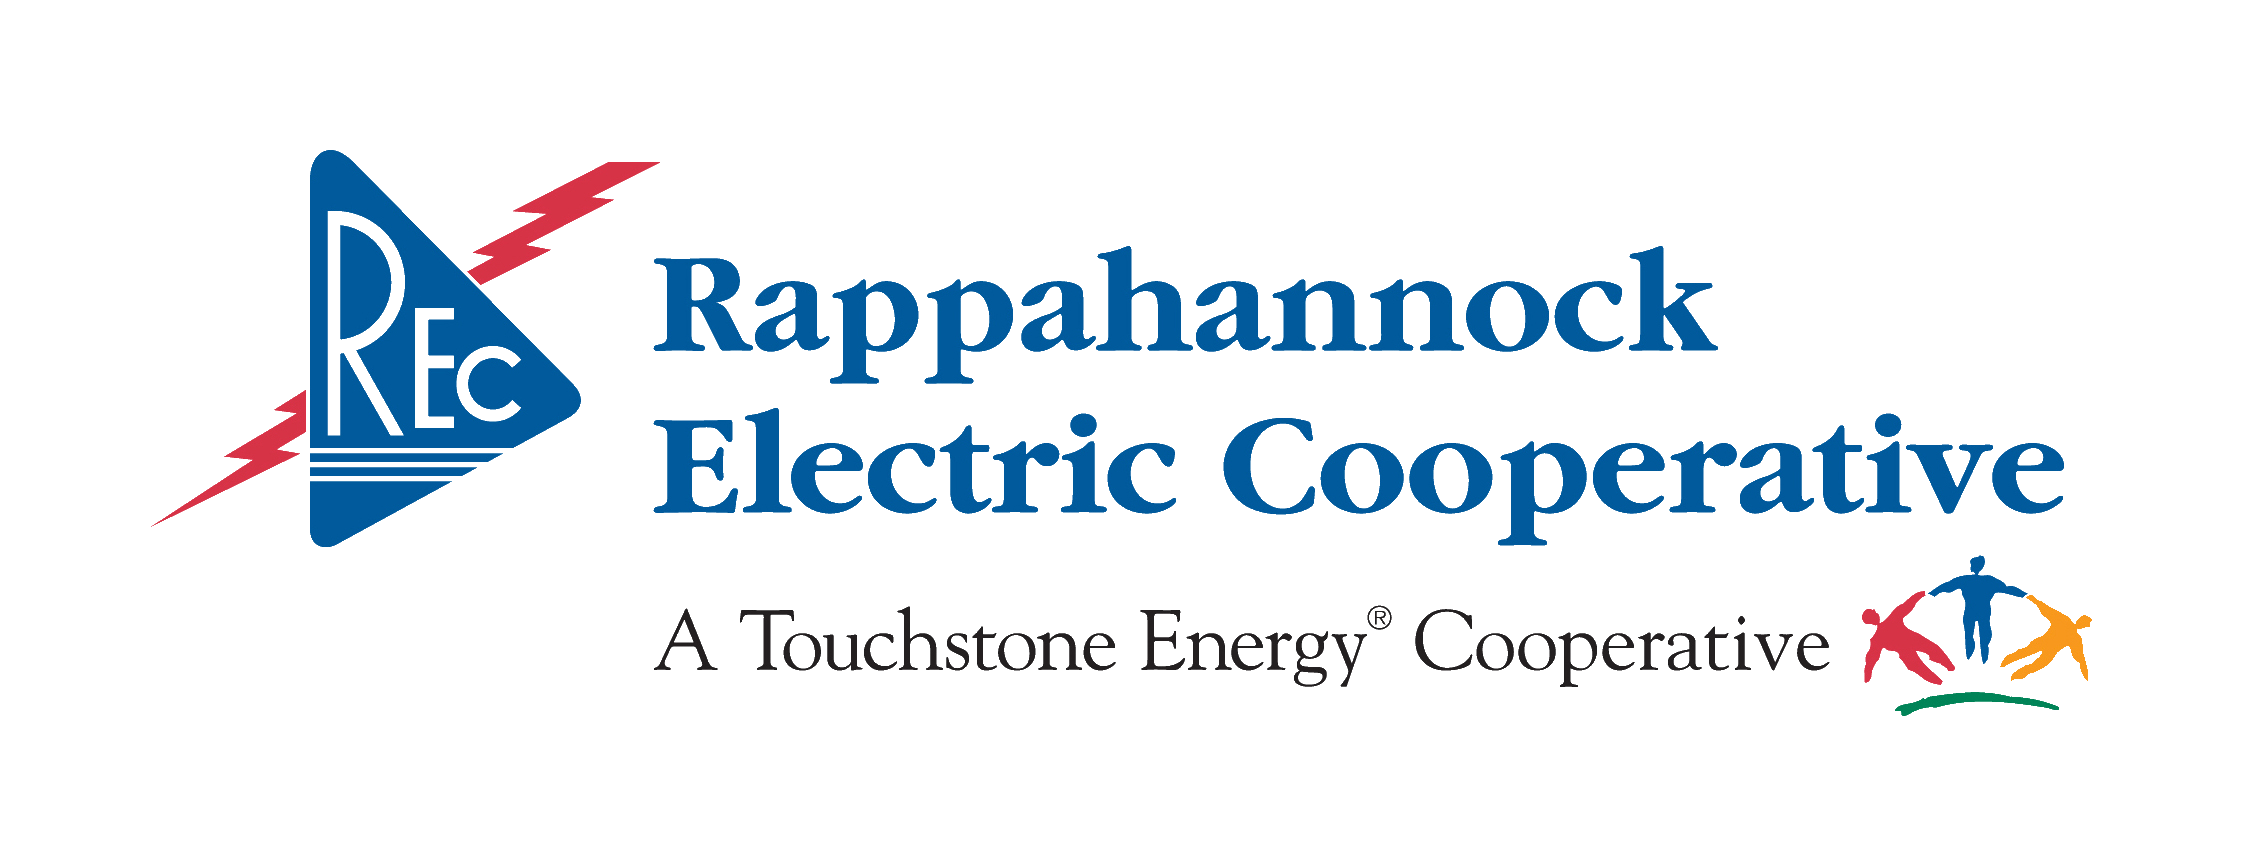 Rapahannock Electric Cooperative